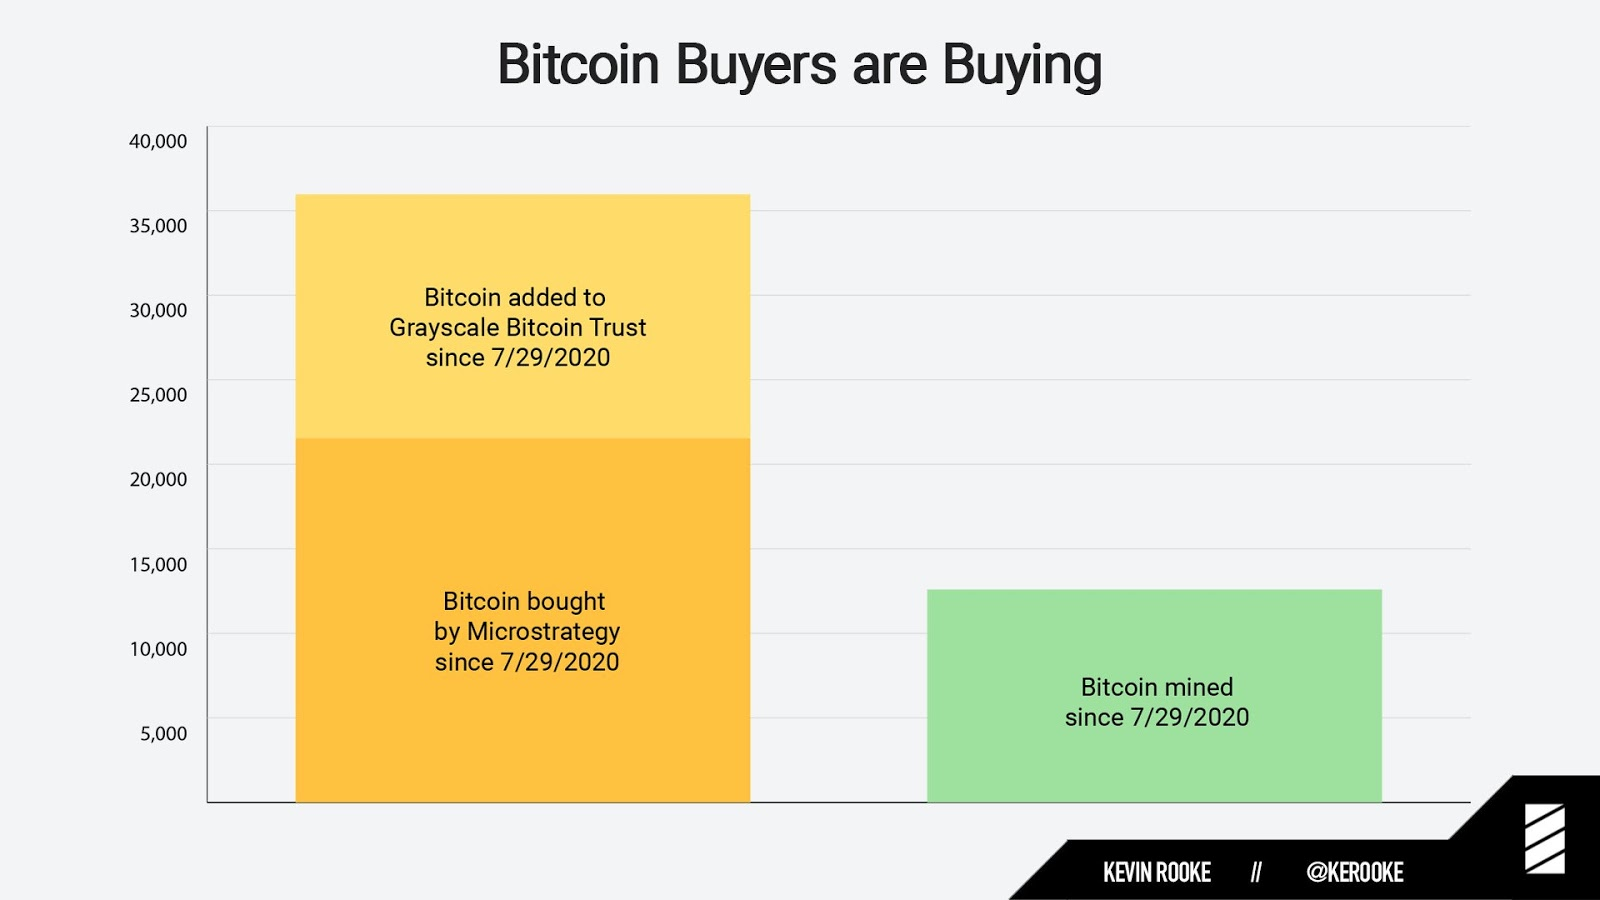 Bitcoin buying from Grayscale and MicroStrategy Vs. supply